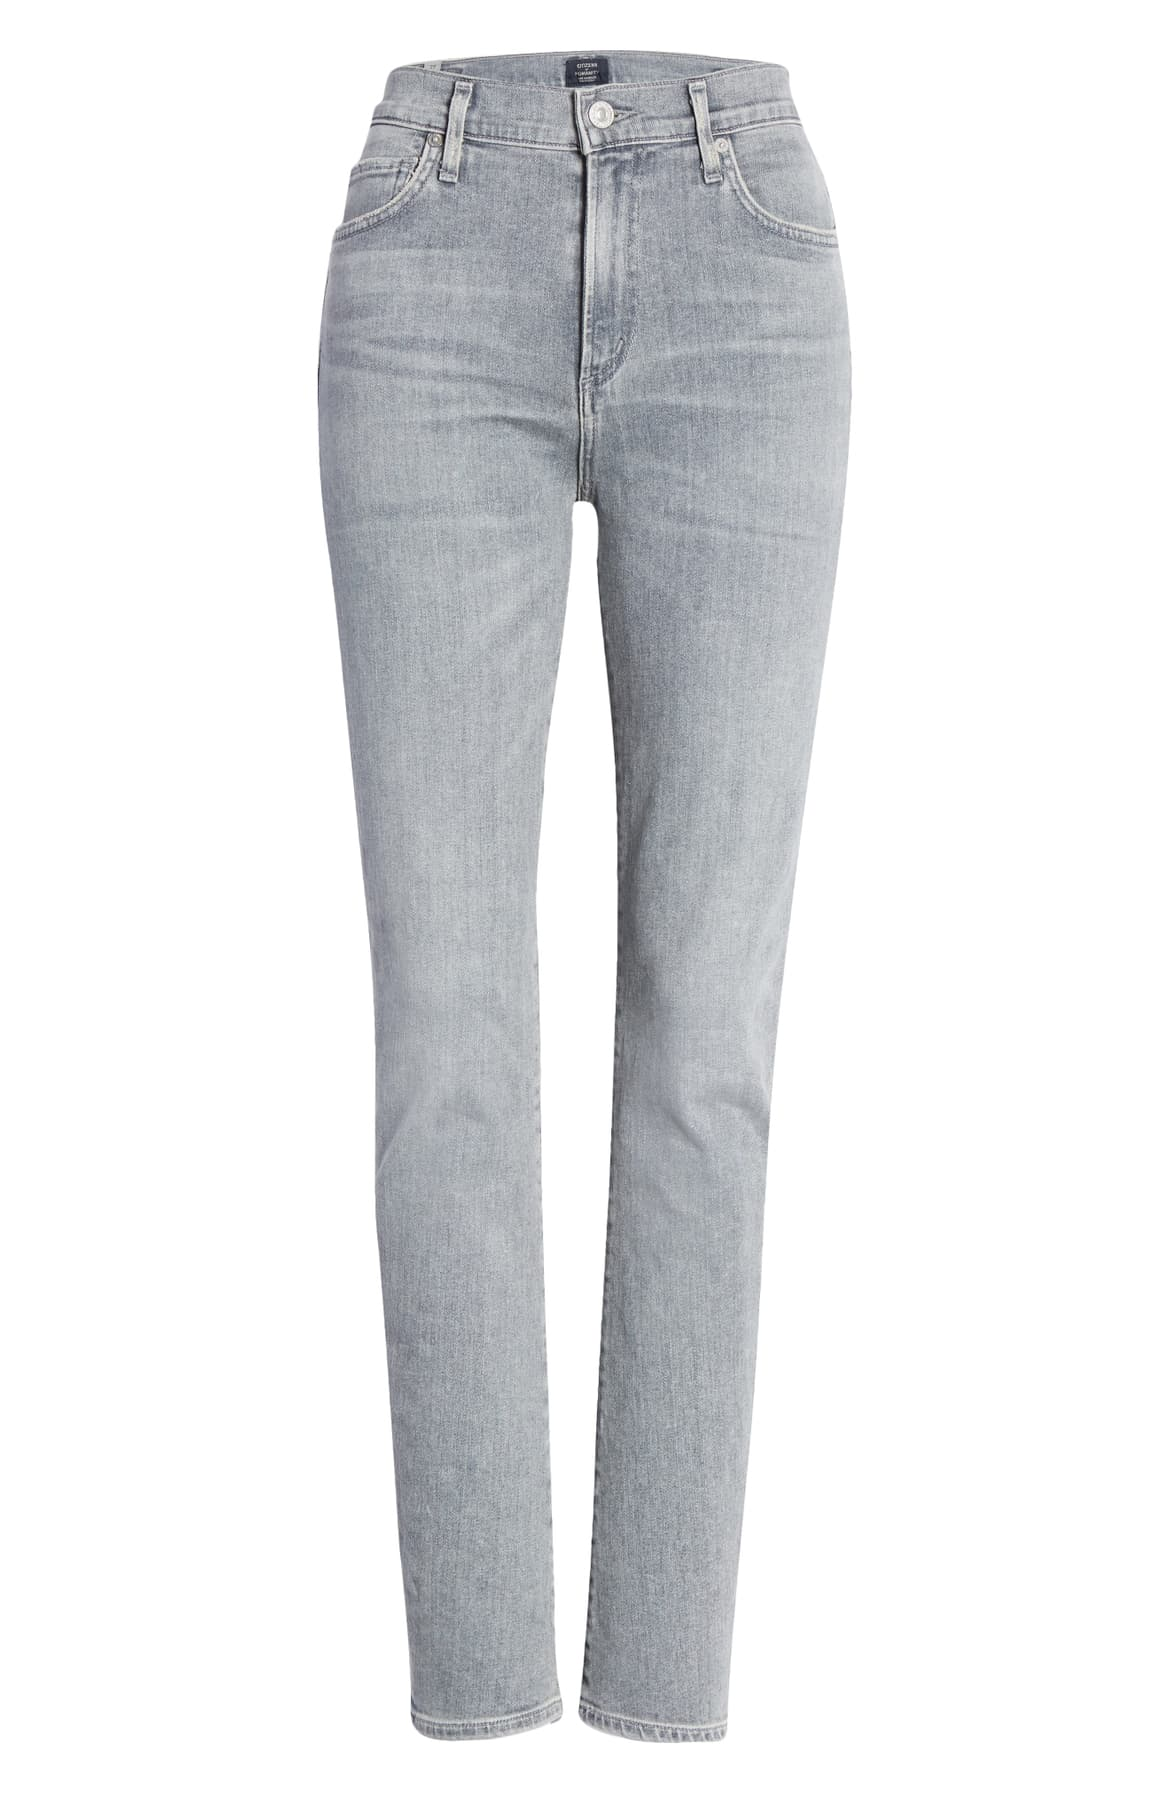 Harlow High Rise Slim Leg in Cosmic Grey